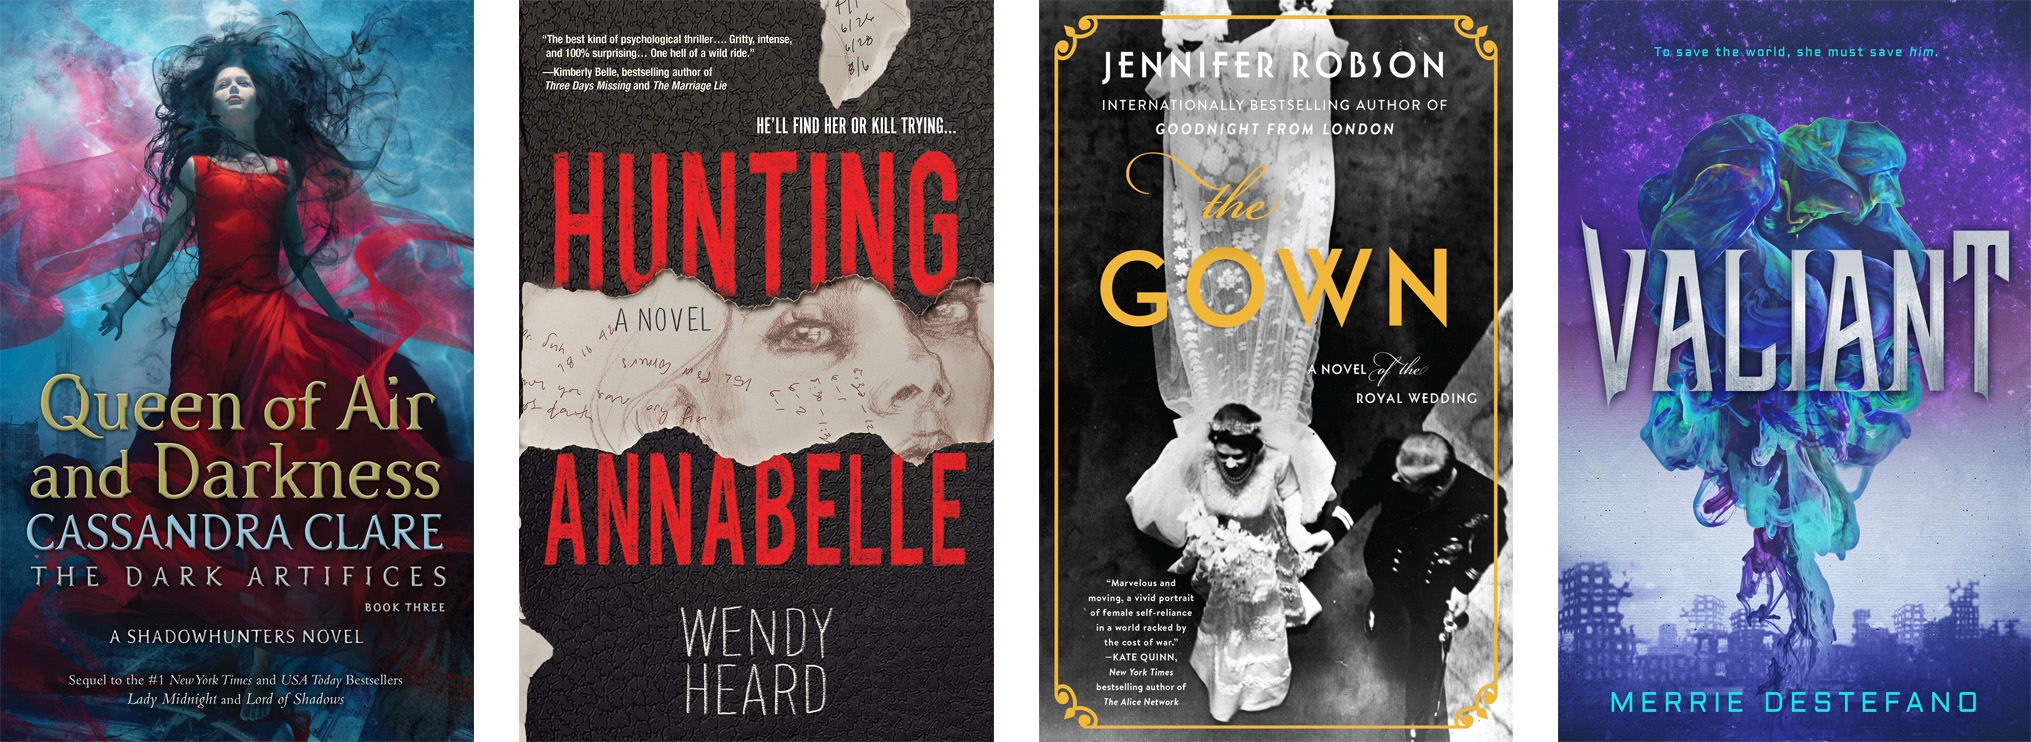 December Book Releases | The Nerd Daily